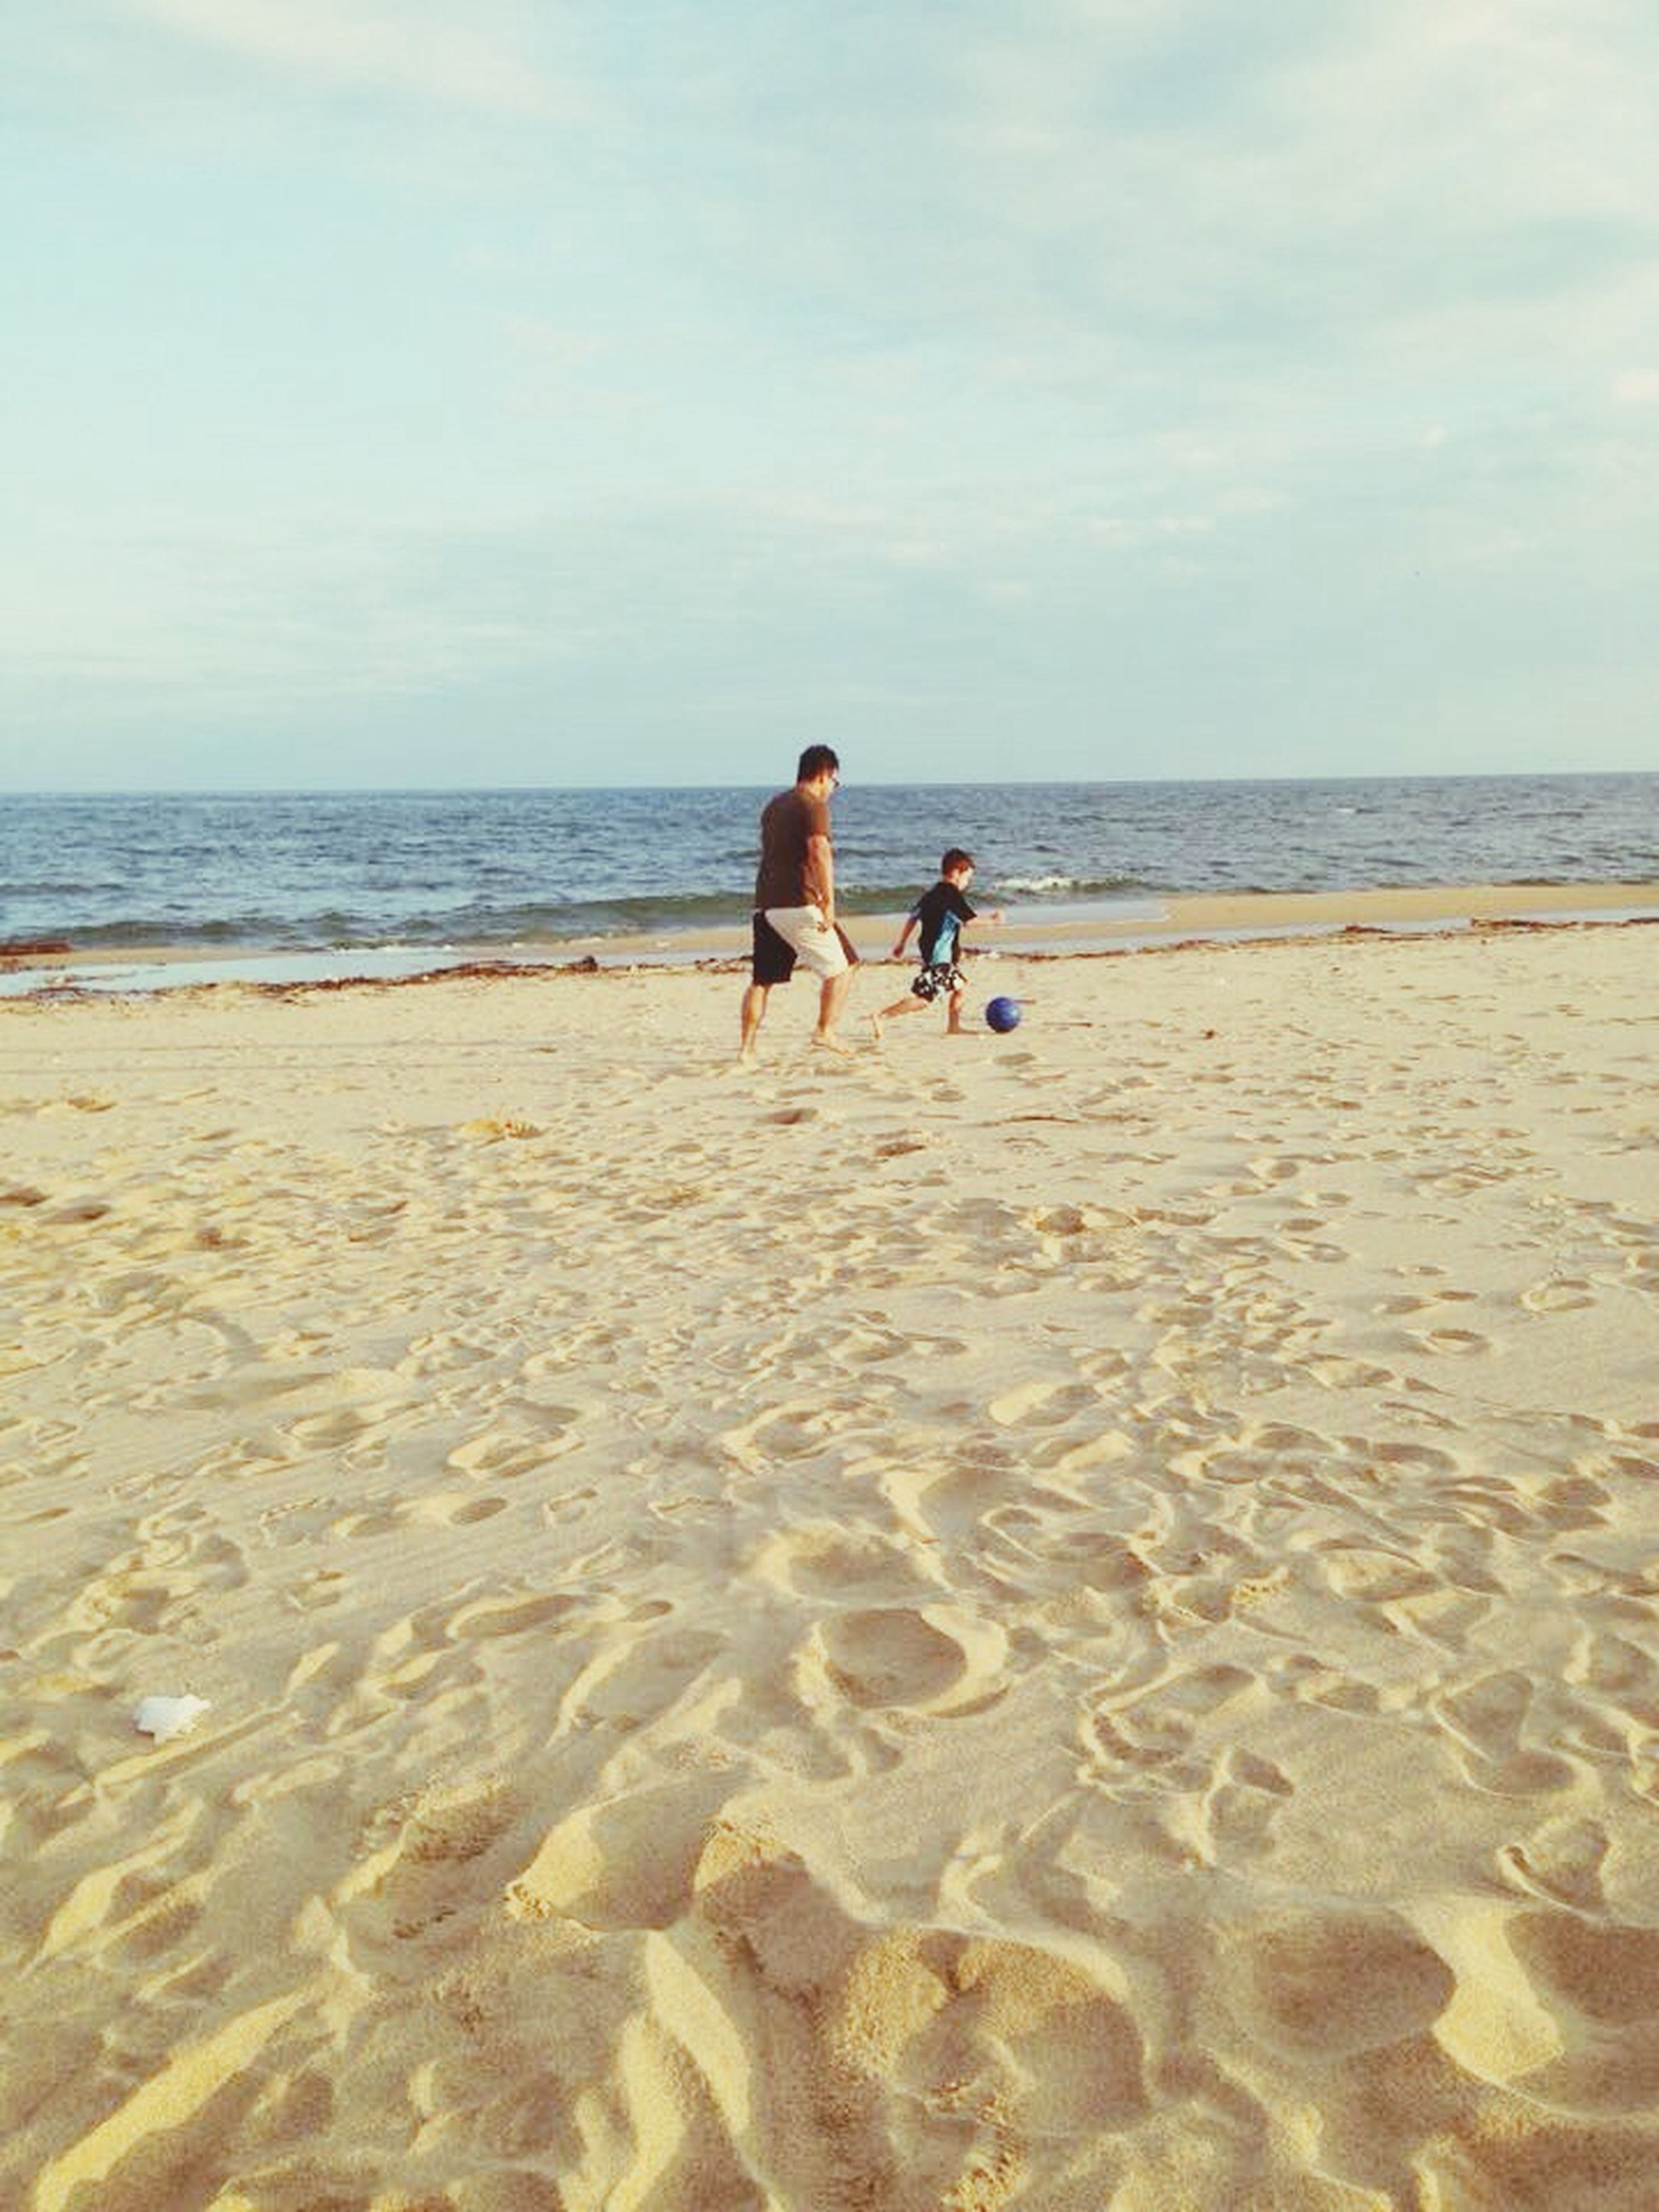 beach, sea, horizon over water, water, sand, shore, sky, leisure activity, vacations, lifestyles, tranquility, scenics, tranquil scene, rear view, beauty in nature, nature, full length